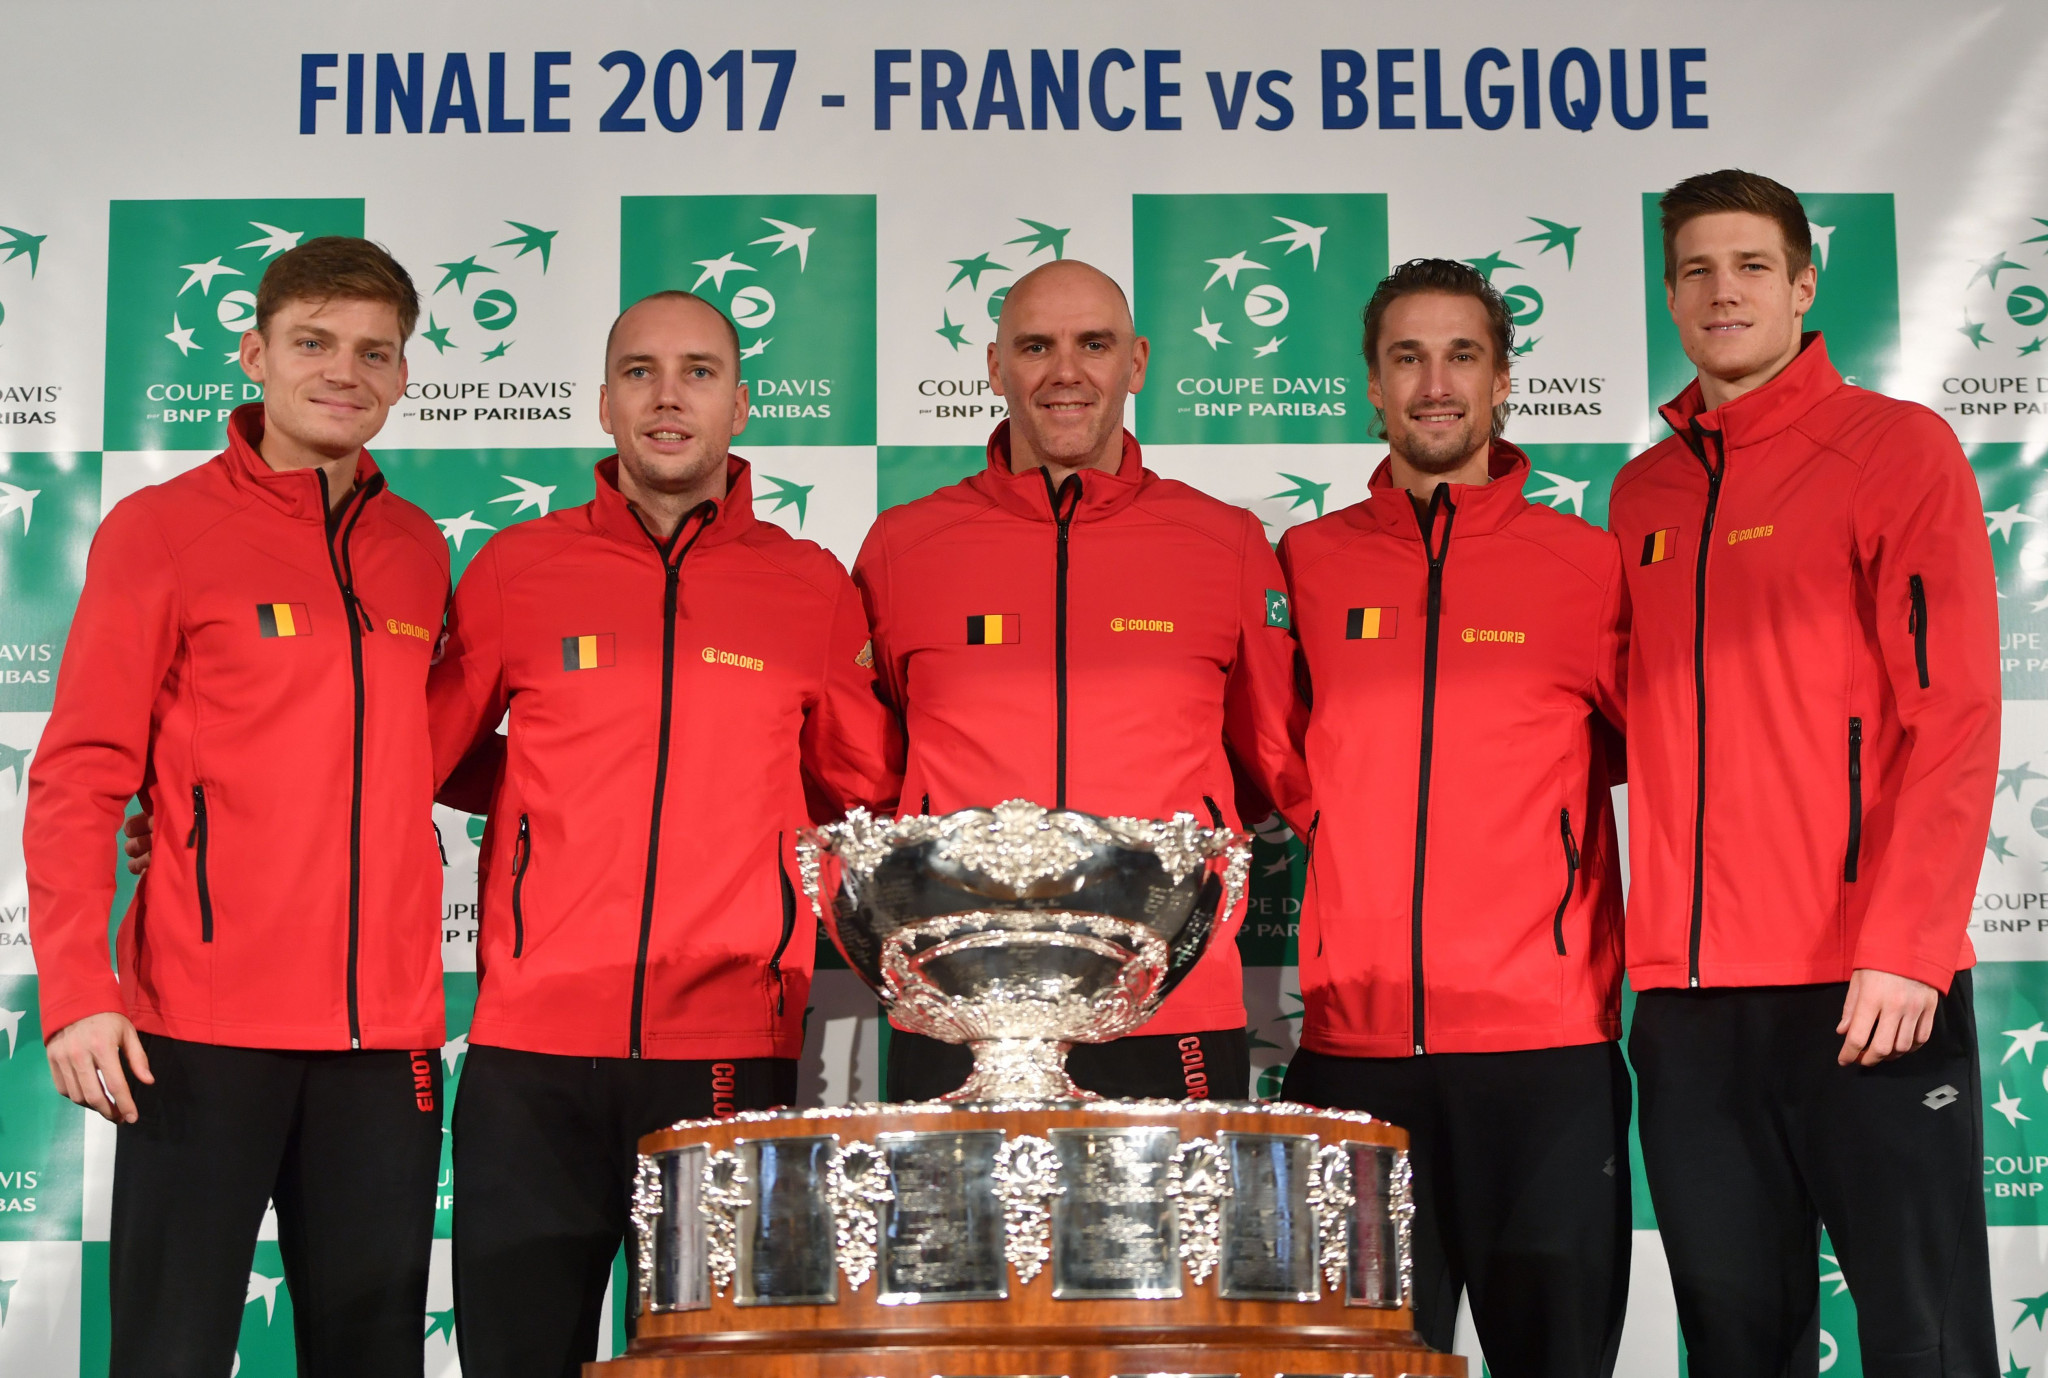 Belgium's captain Johan Van Herck (C) poses with his players (LtoR) David Goffin, Steve Darcis, Ruben Bemelmans and Arthur de Greef with the trophy during the team presentation in Villeneuve-d'Ascq on November 23, 2017, ahead of the Davis Cup World Group final between France and Belgium ©Getty Images